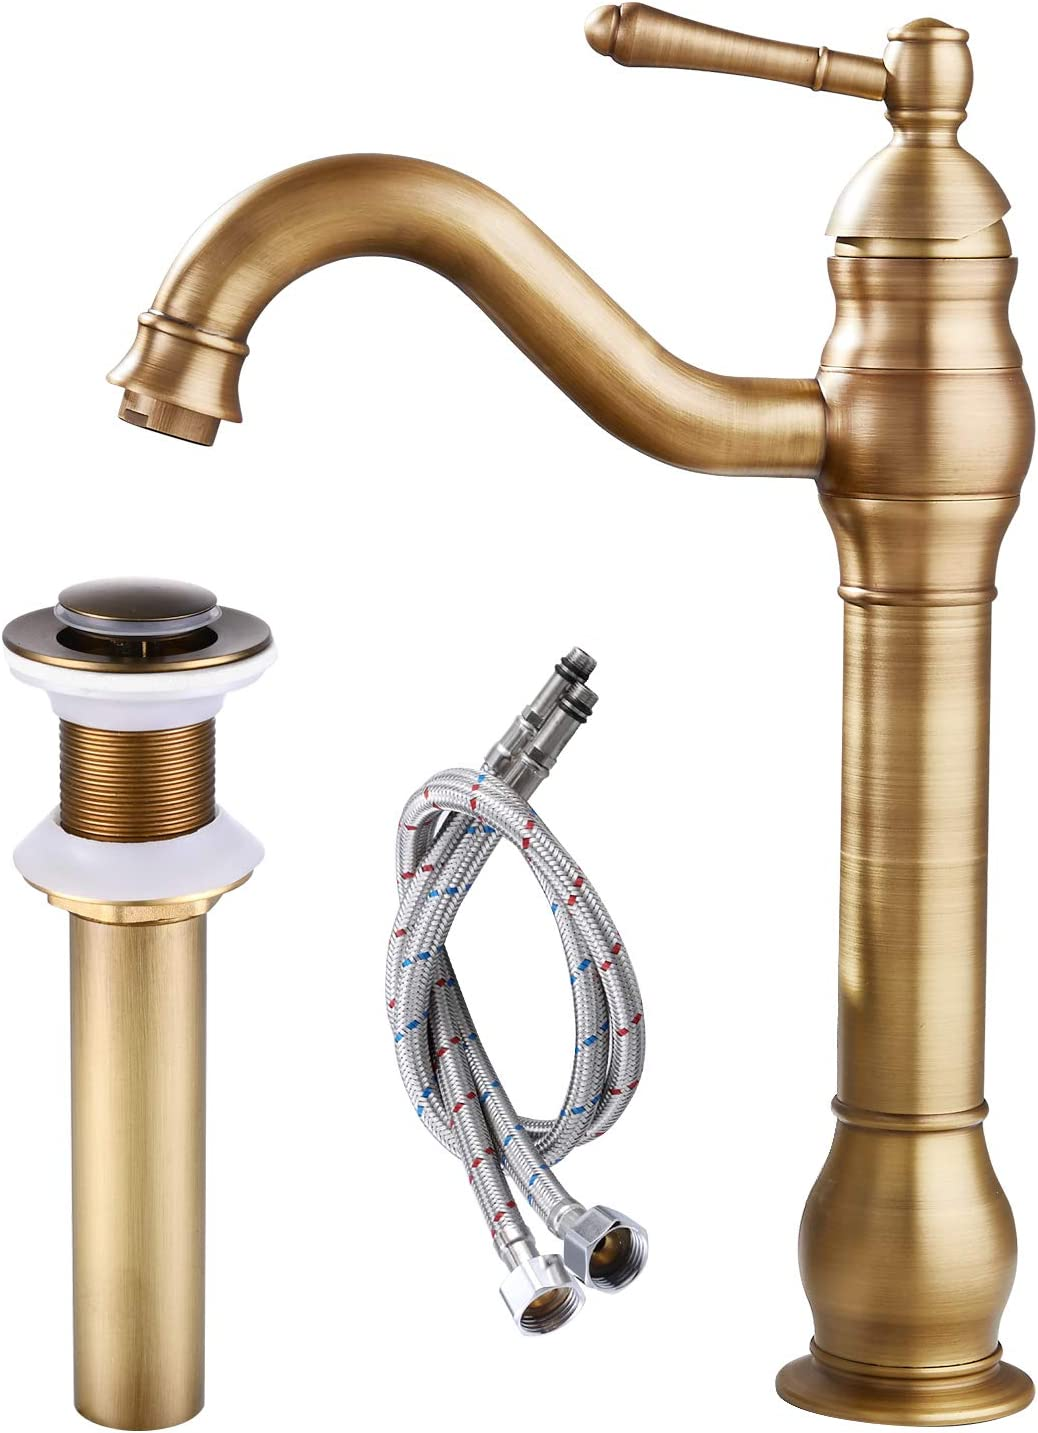 Bathroom Basin Tap Antique Brass Faucet Single Lever One Hole Vanity Sink Mixer